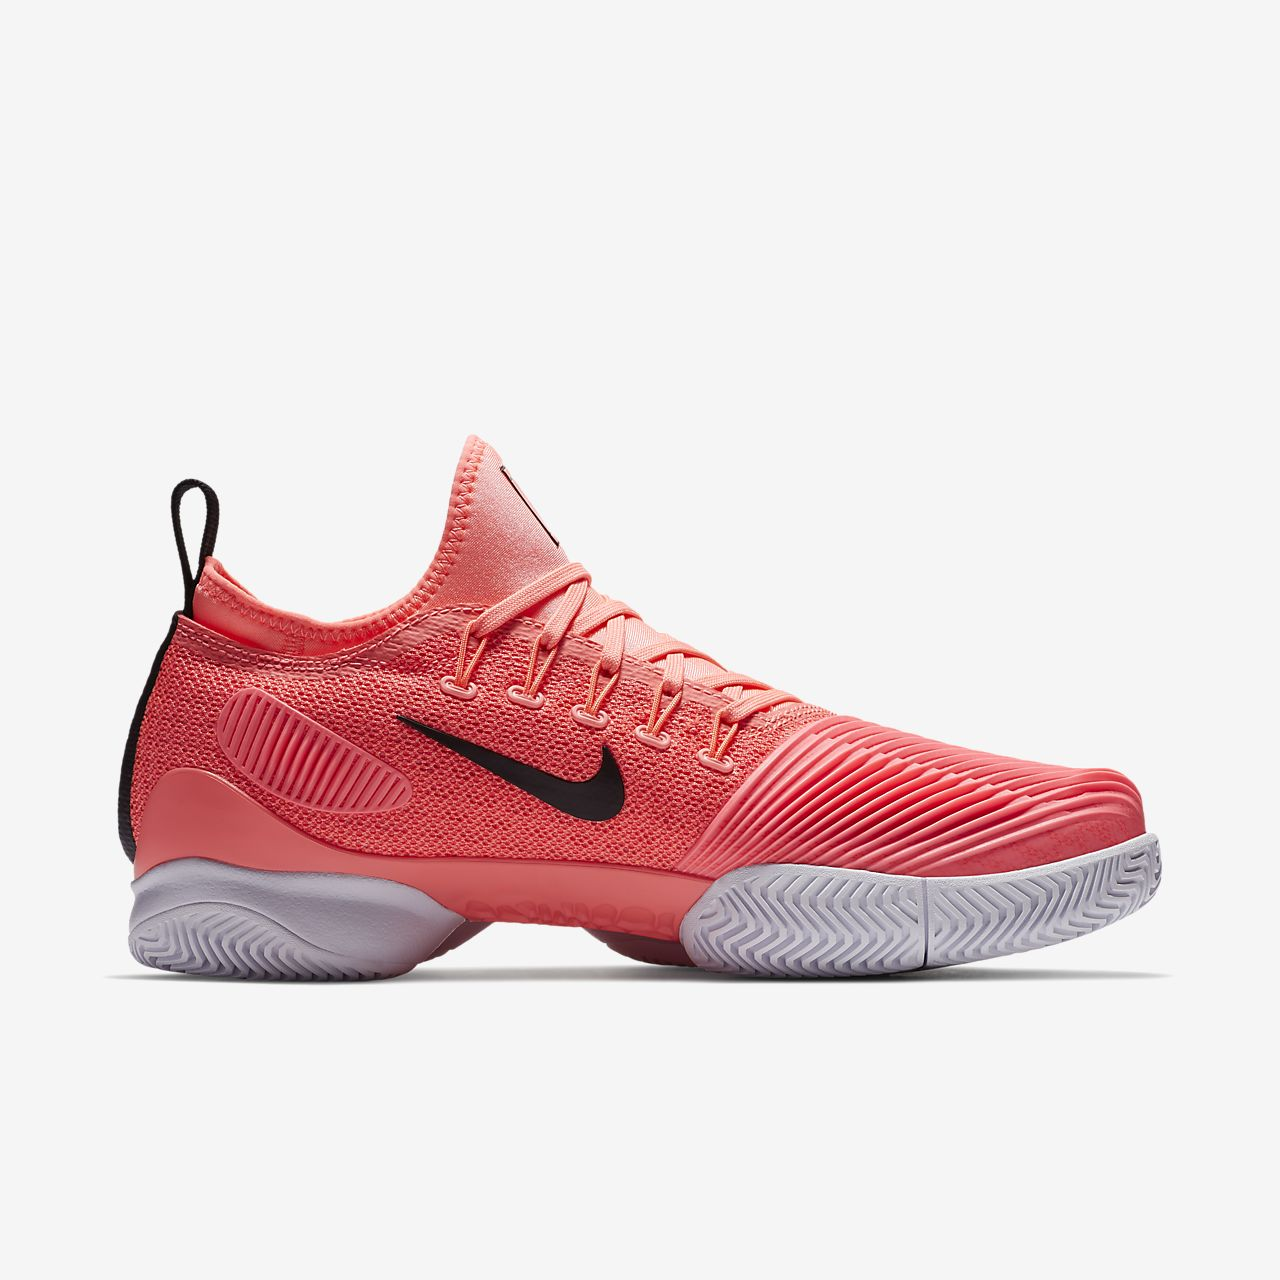 NikeCourt Air Zoom Ultra Hard Court - H9326